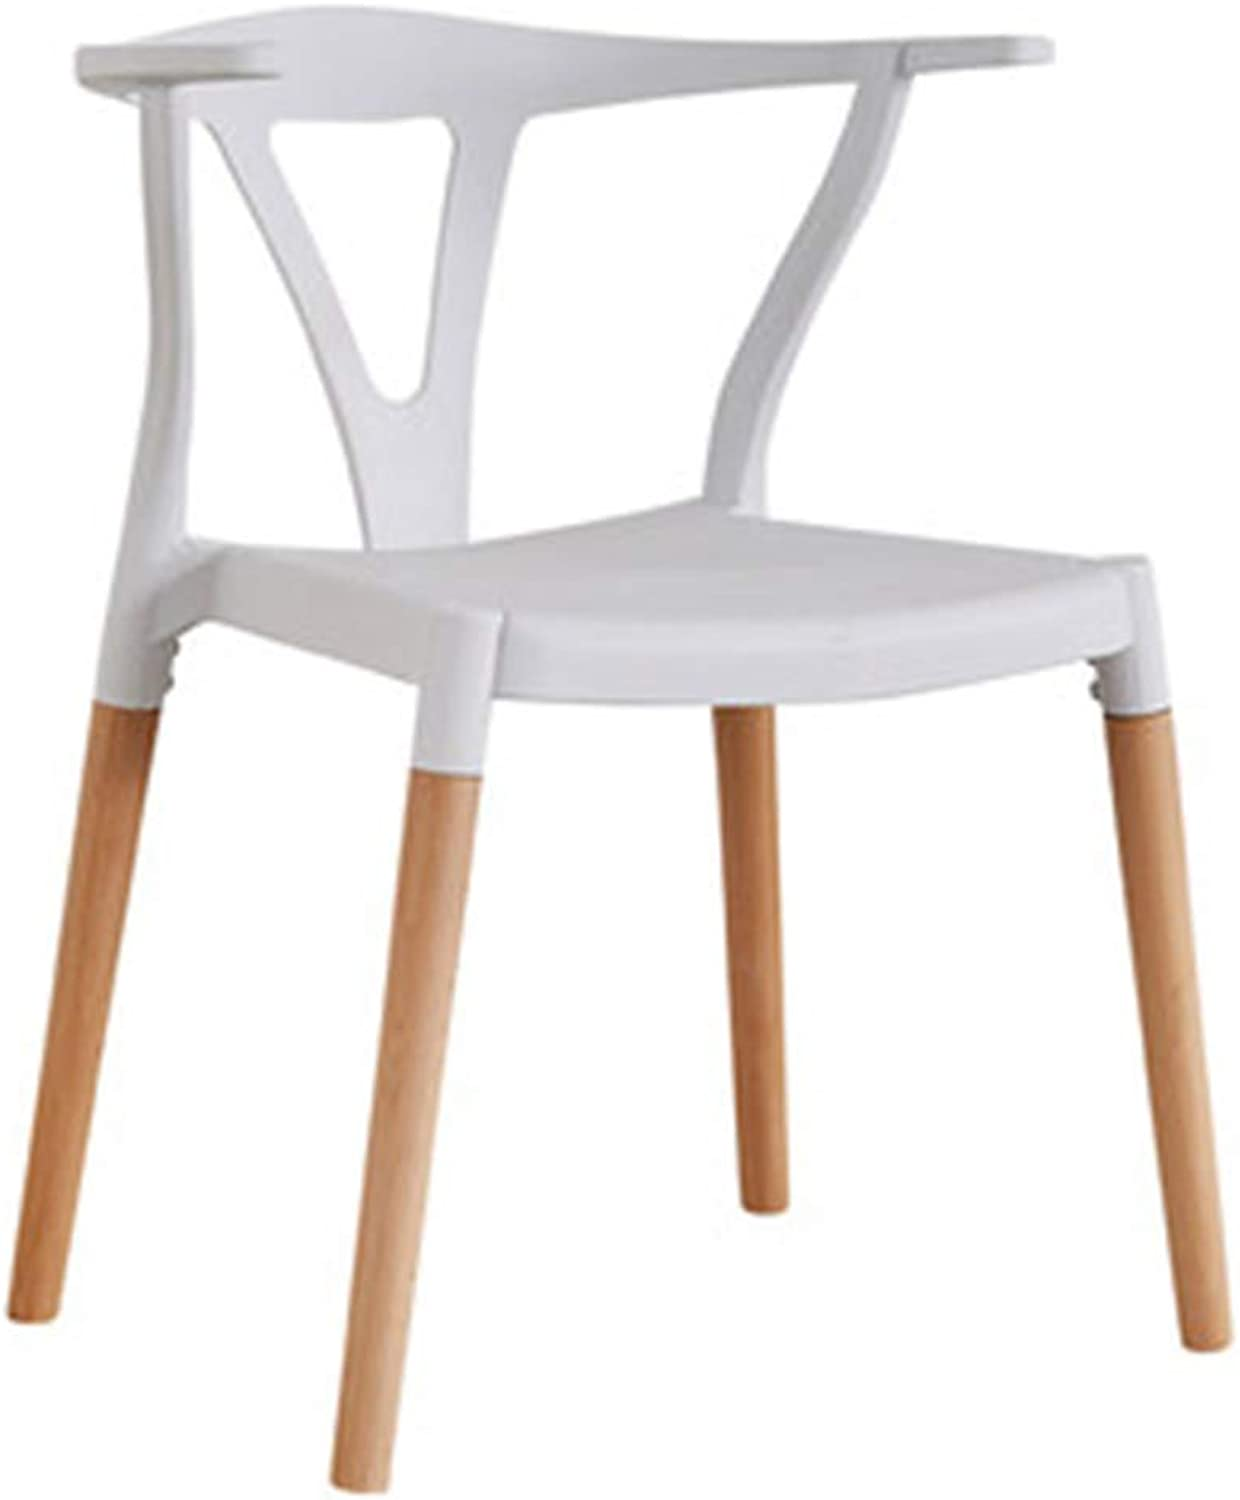 Chair Chair Modern Simplicity Easy Assembly Solid Wood Chair Legs Restaurant Study Room (color   White)